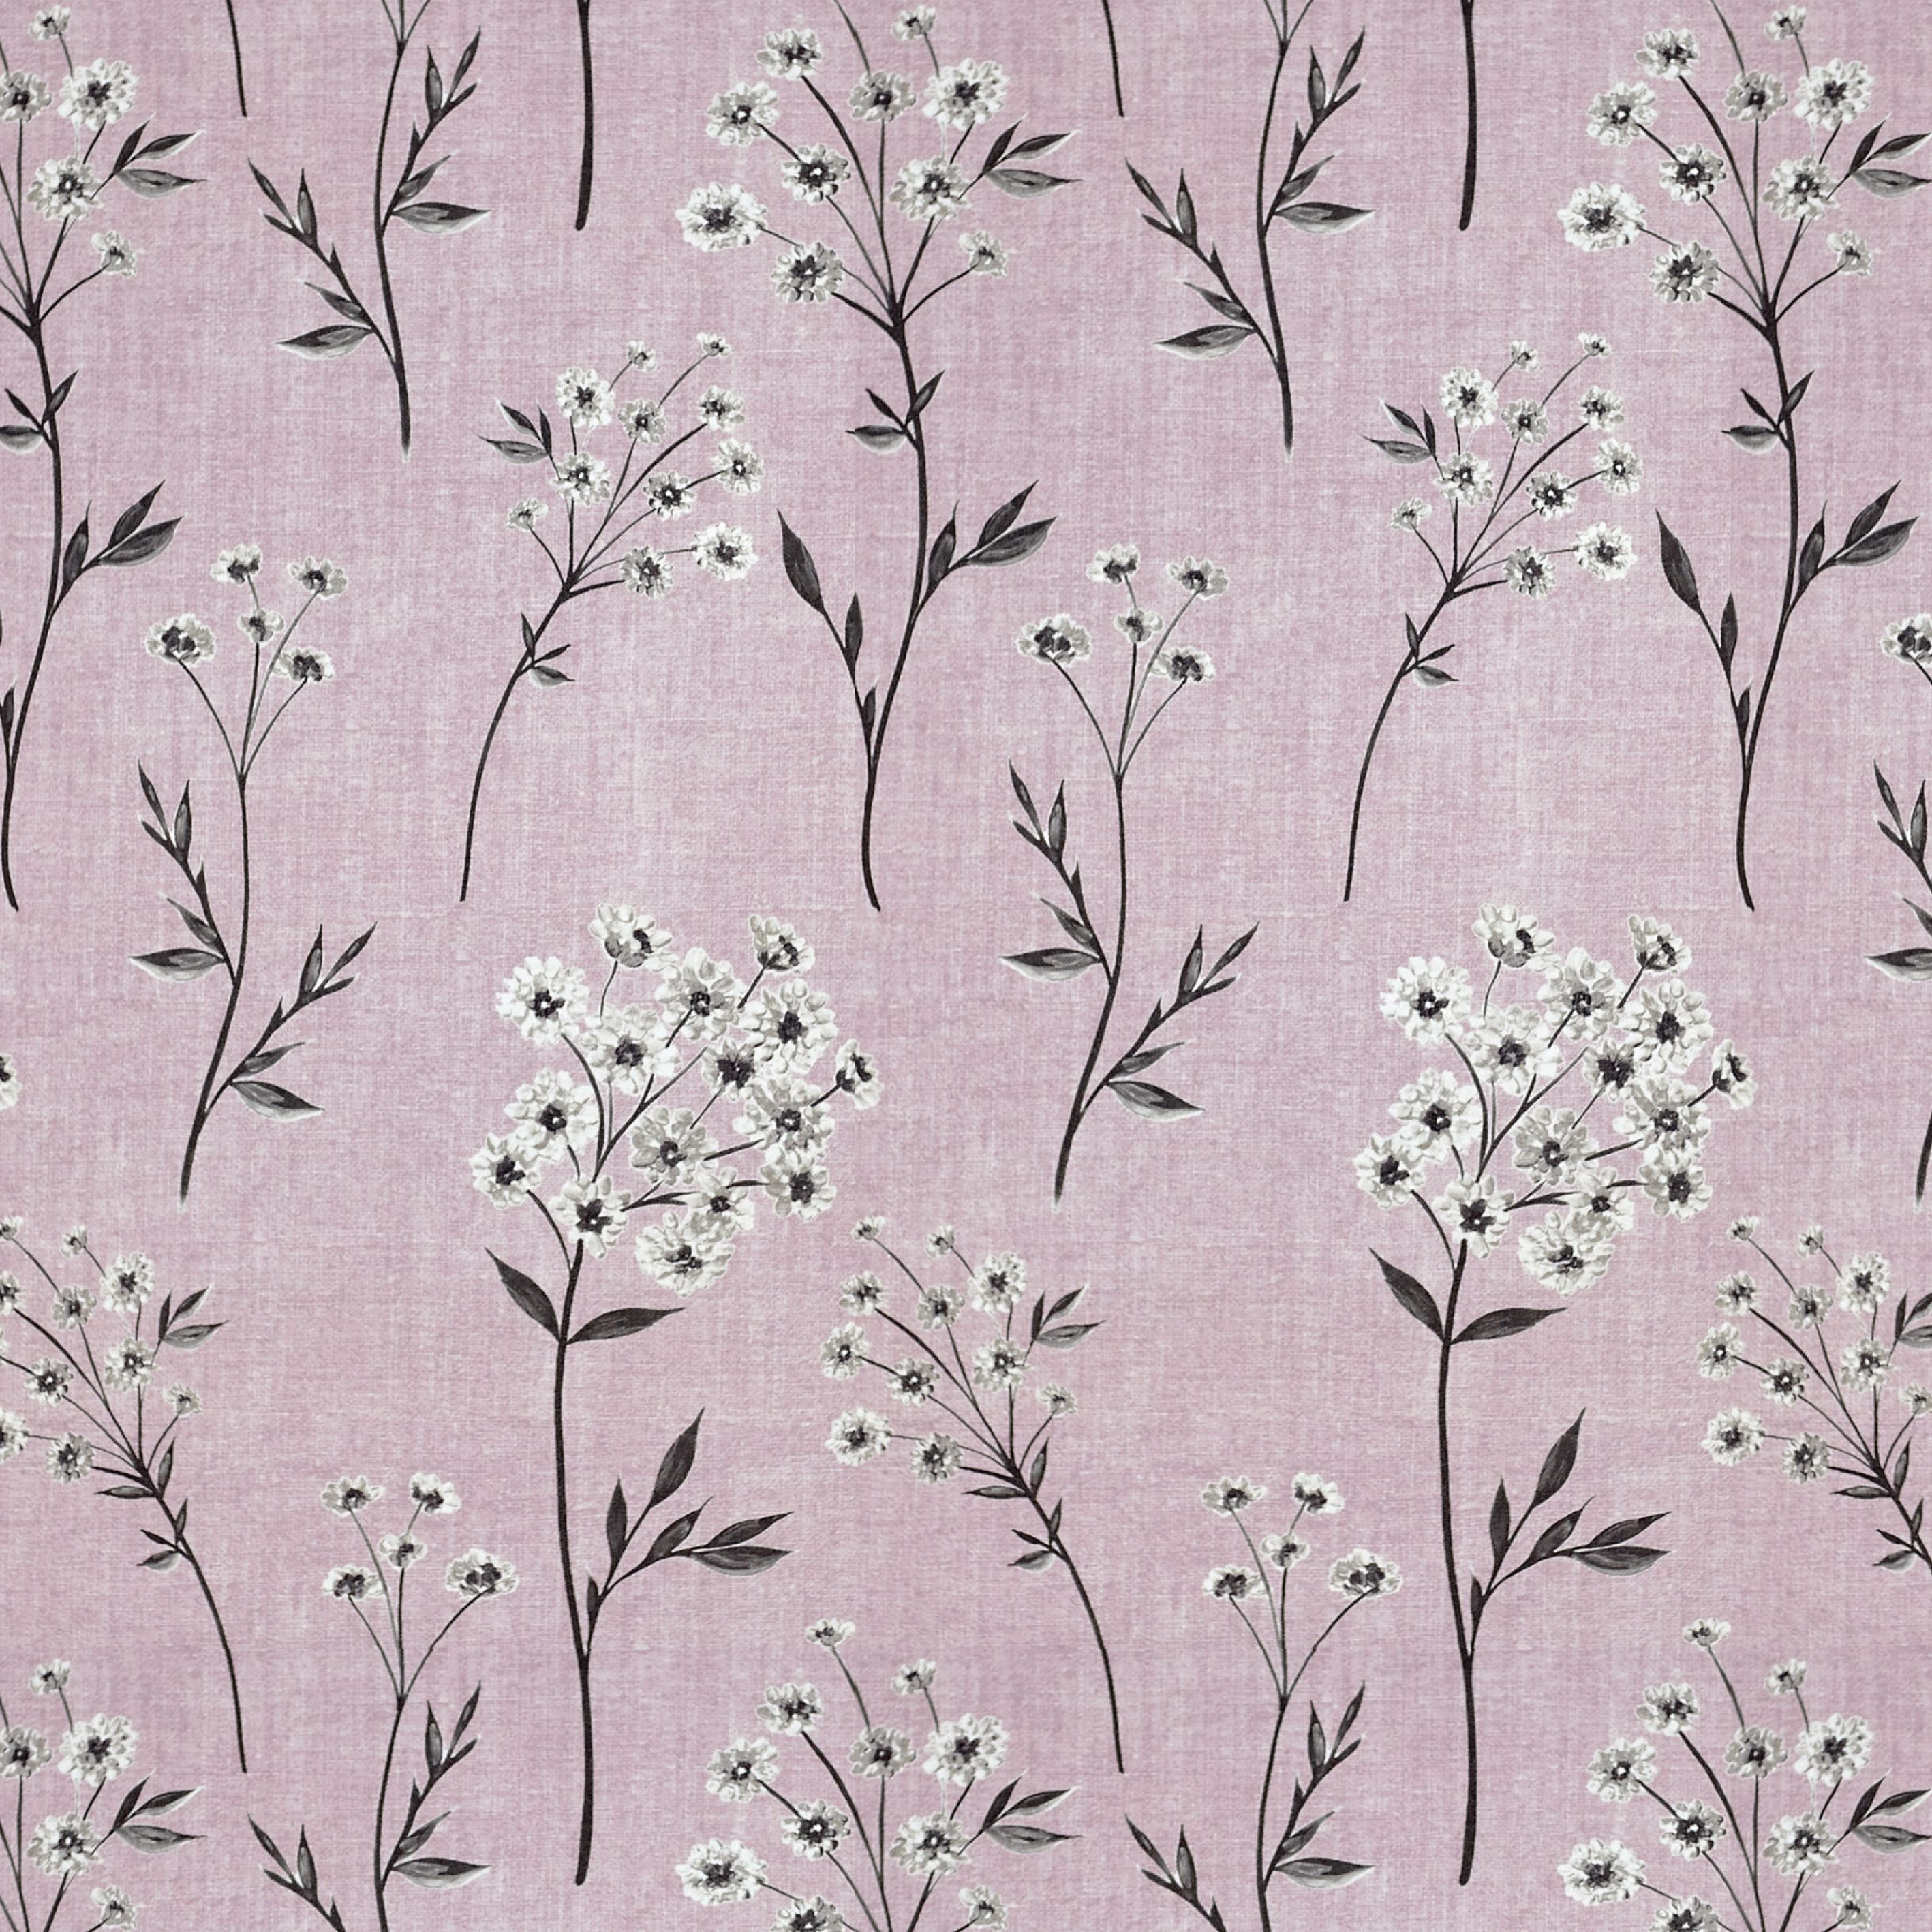 McAlister Textiles Meadow Blush Pink Floral Cotton Print Fabric Fabrics